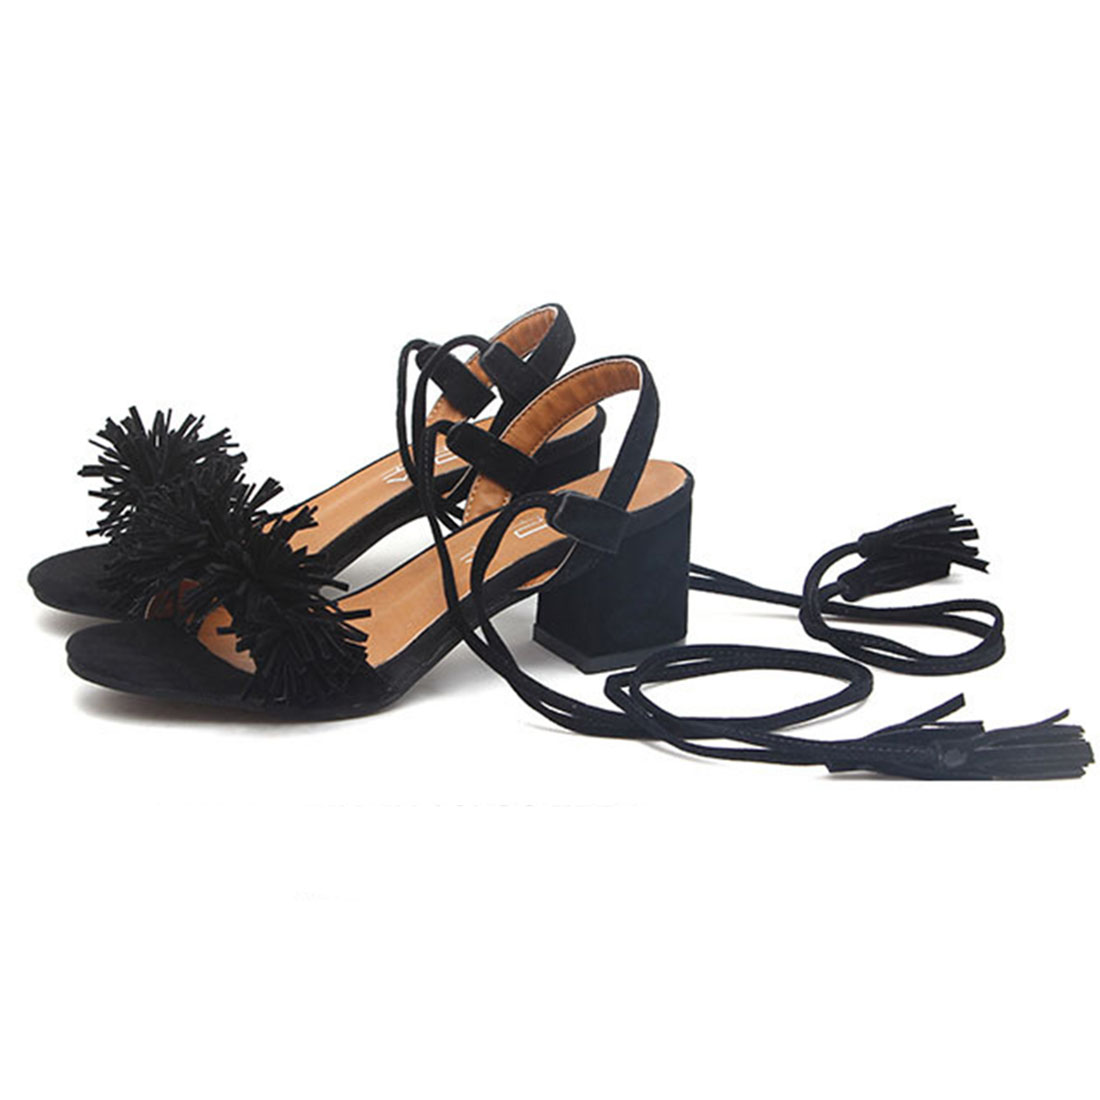 women Sandal ladies fringe shoes Plus Size 35-41 2017 New Hot Summer Mid high-Heel Casual Lace-Up Sandals Women Shoes Black Red brand new hot sale sexy suede leather women tassel sandals blue black purple red ladies high heel fringe shoes plus big size 42